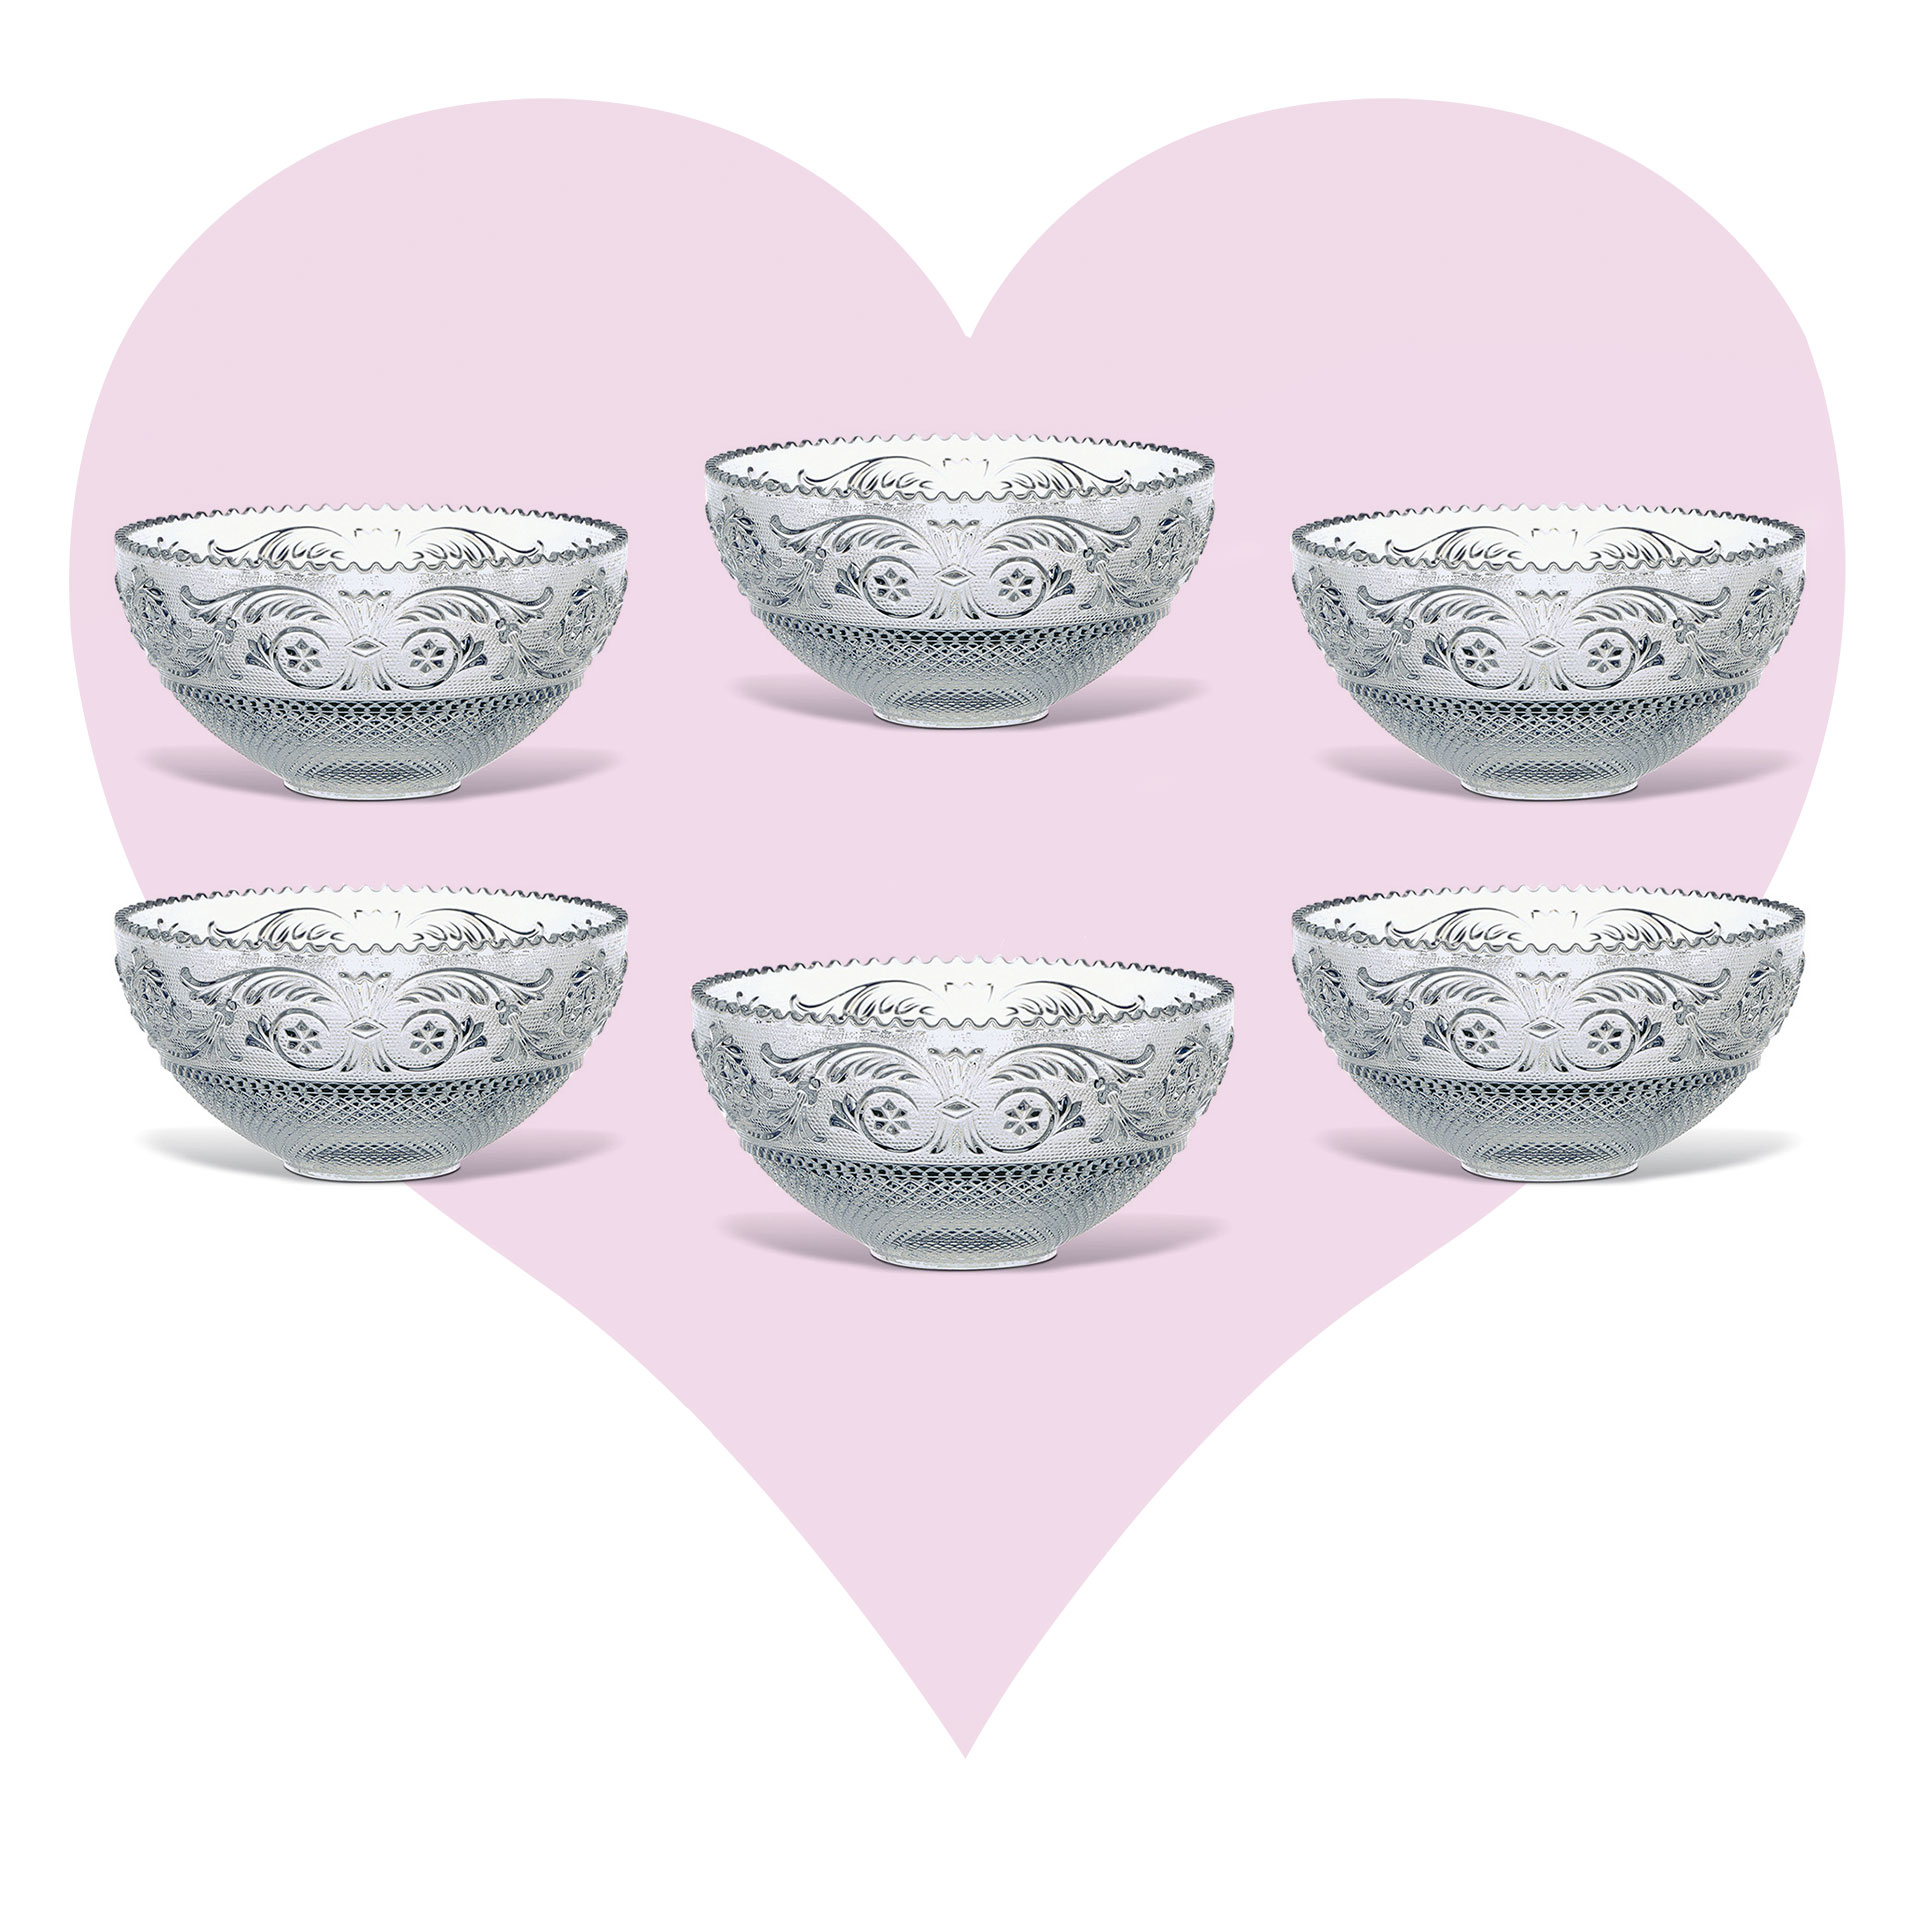 ARABESQUE DESSERT SET